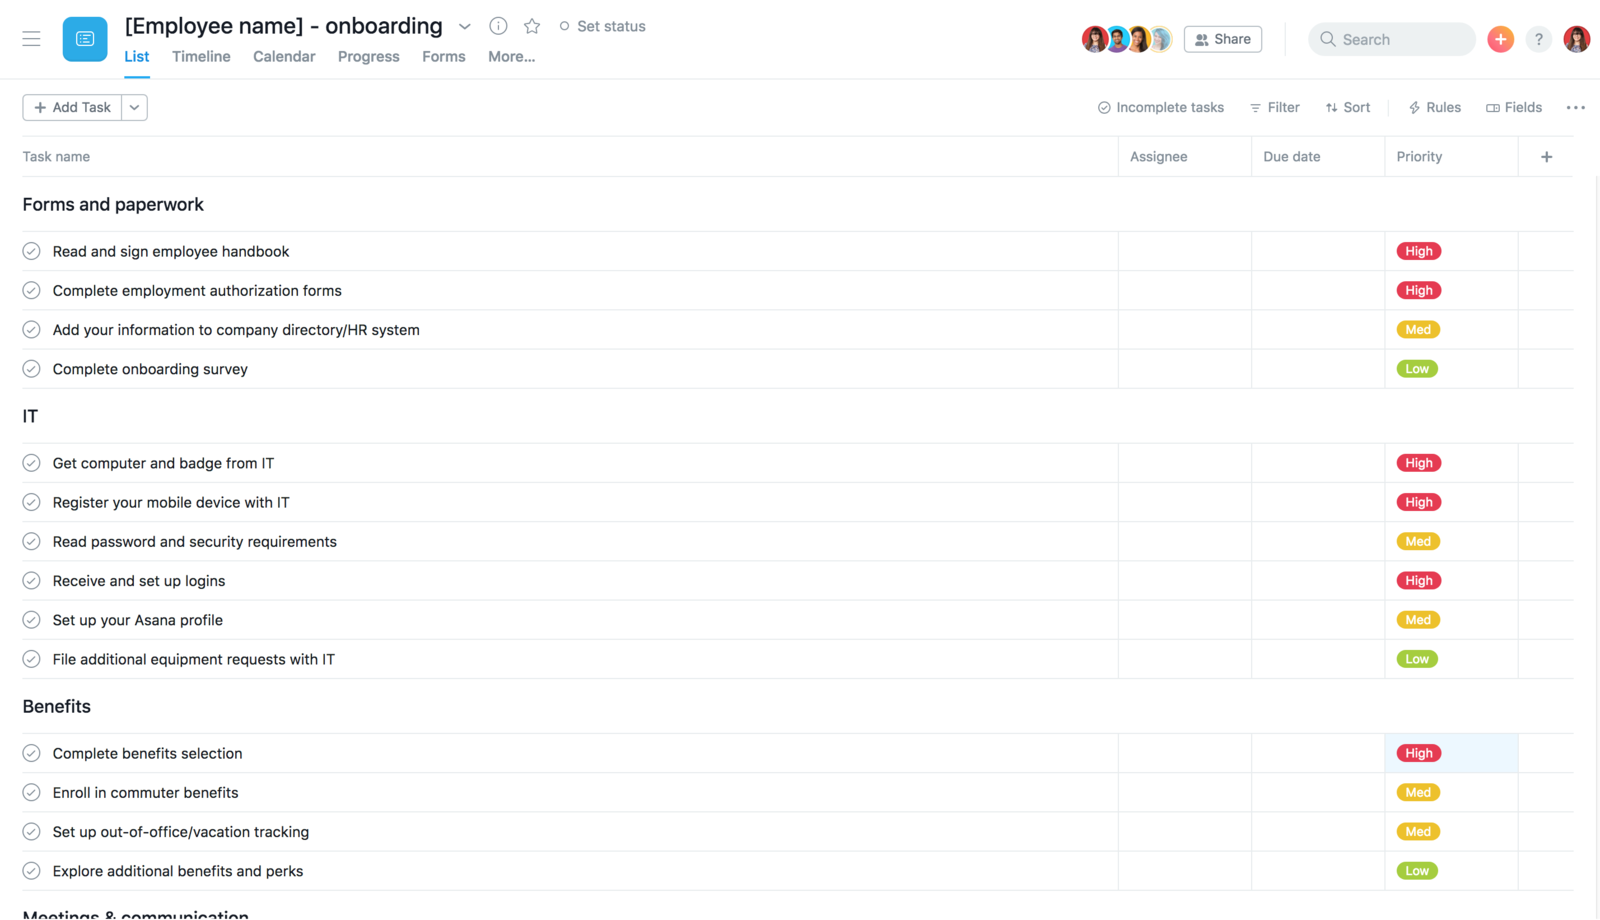 HR Onboarding Template project in Asana